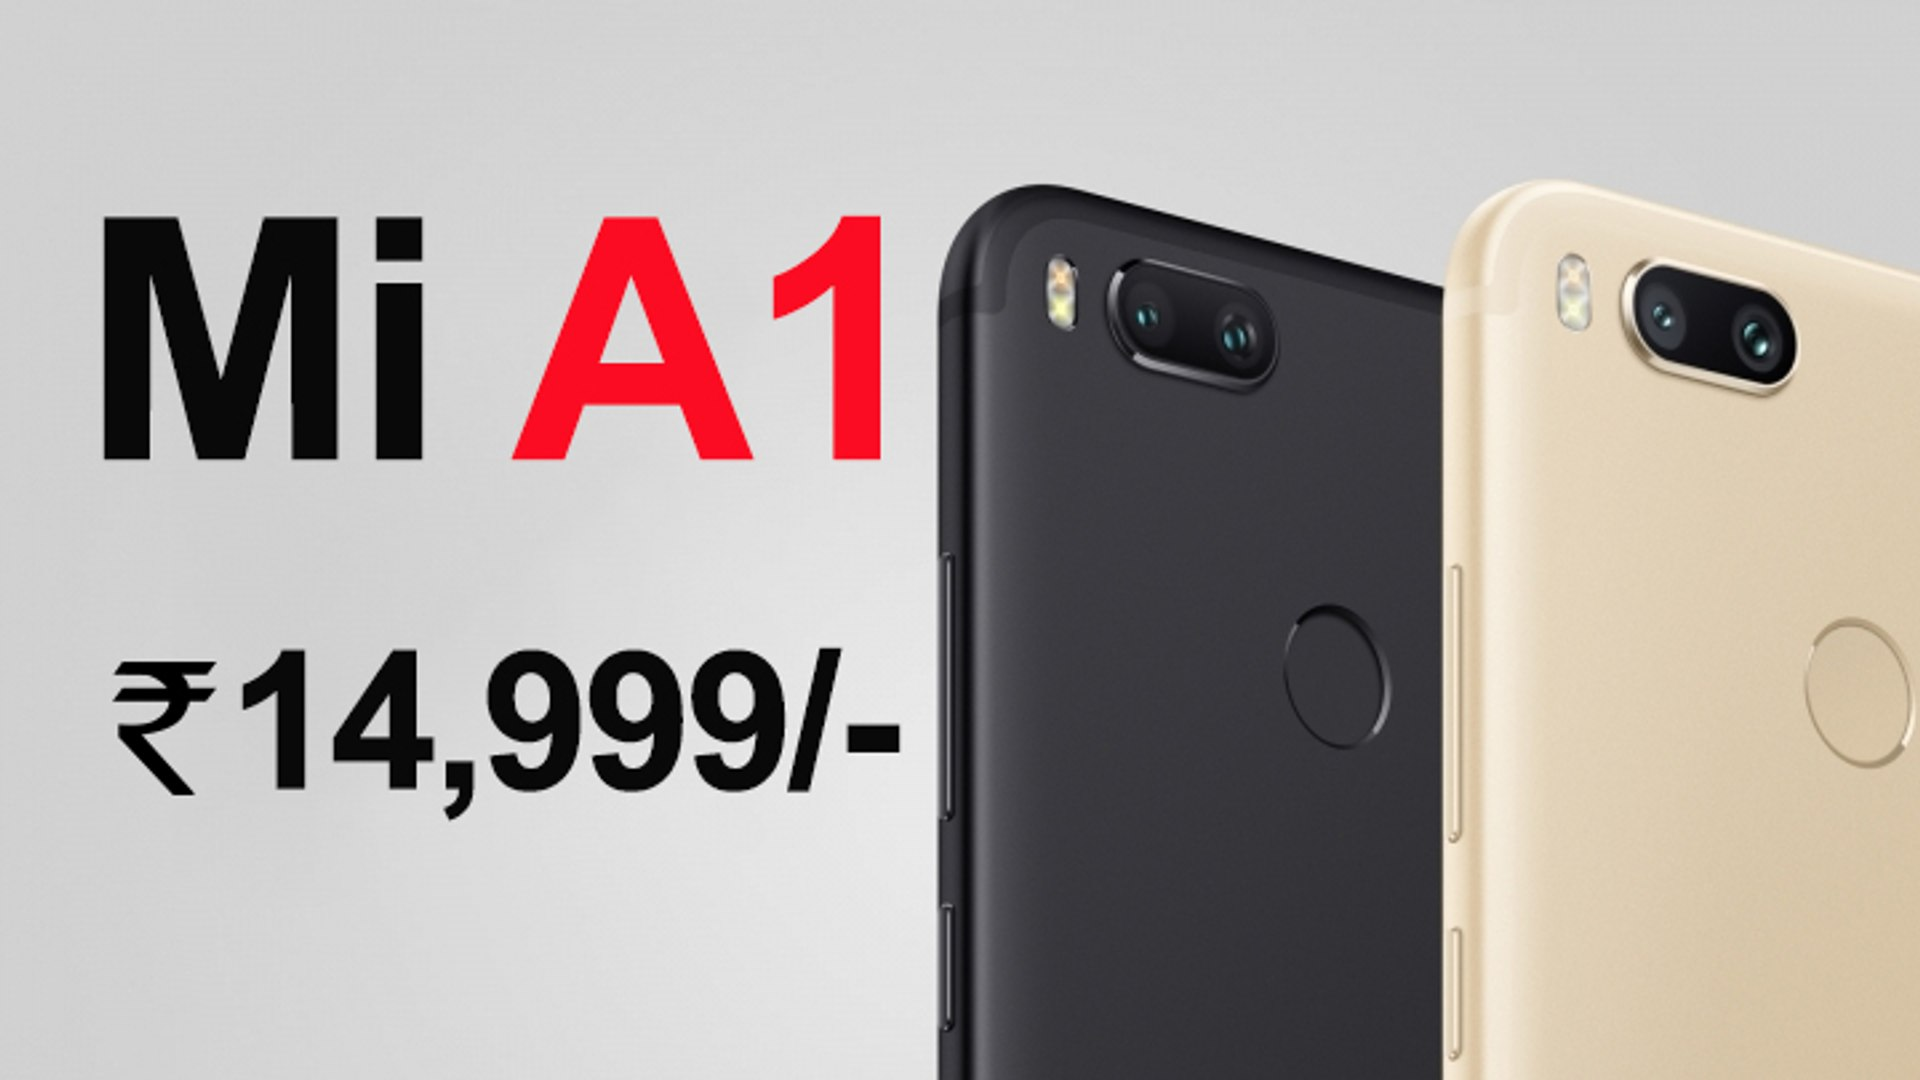 Mi A1 Mobile - Look, Redmi Next Sale on Flipkart/Amazon/Snapdeal